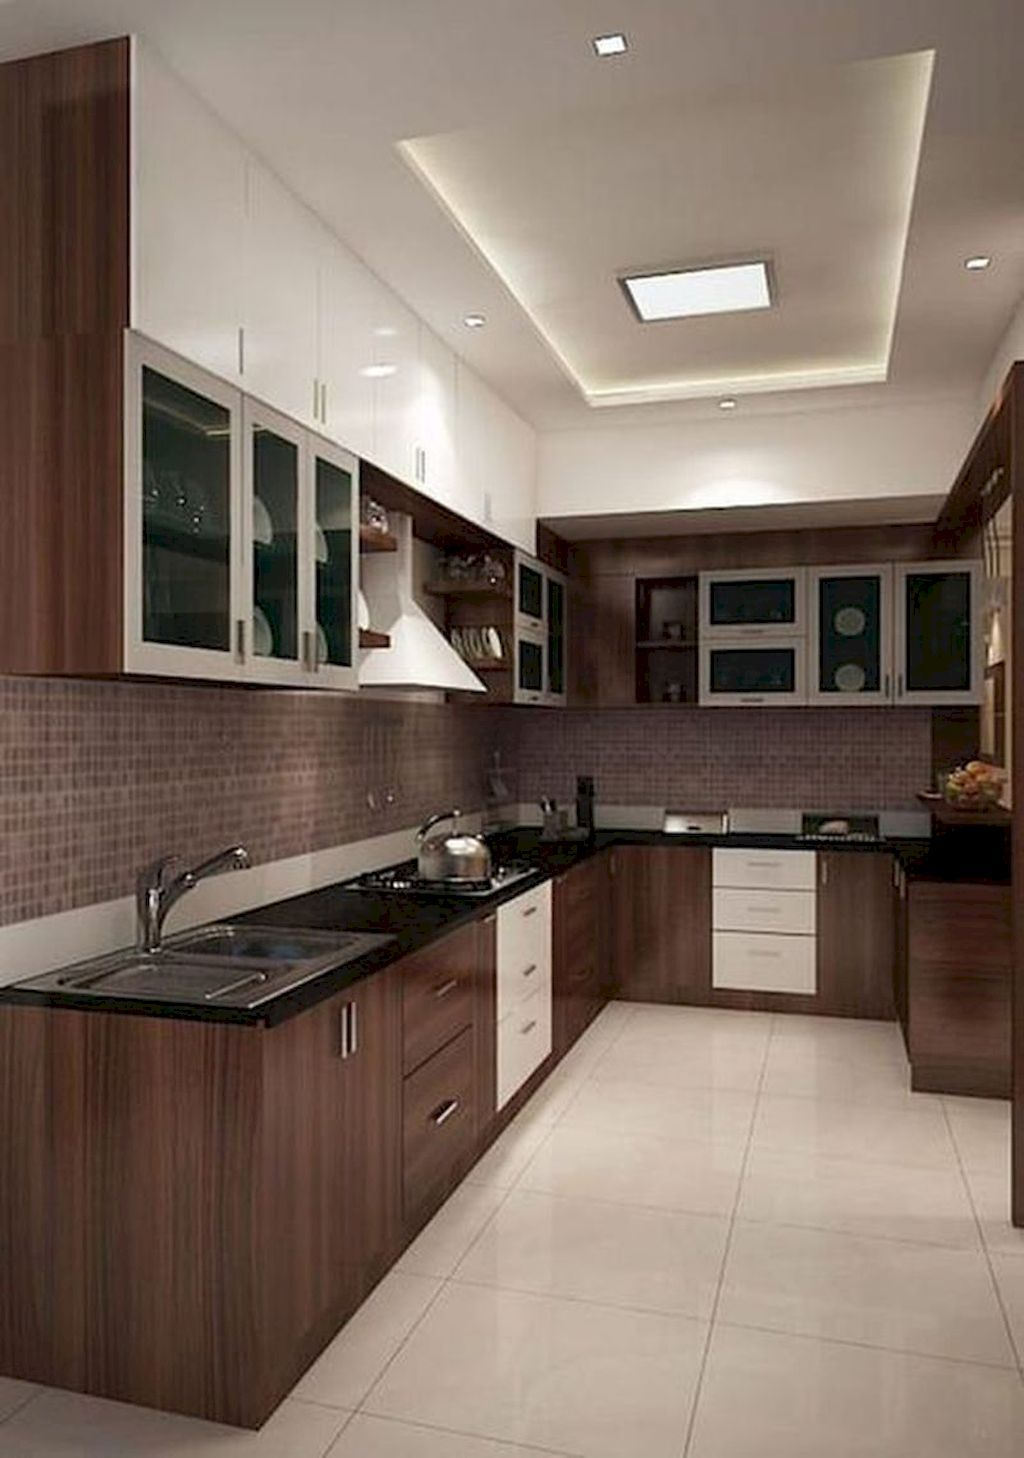 Why You Ought To Select A Modular Kitchen Design In 2020 Modern Kitchen Cabinet Design Interior Design Kitchen Kitchen Furniture Design